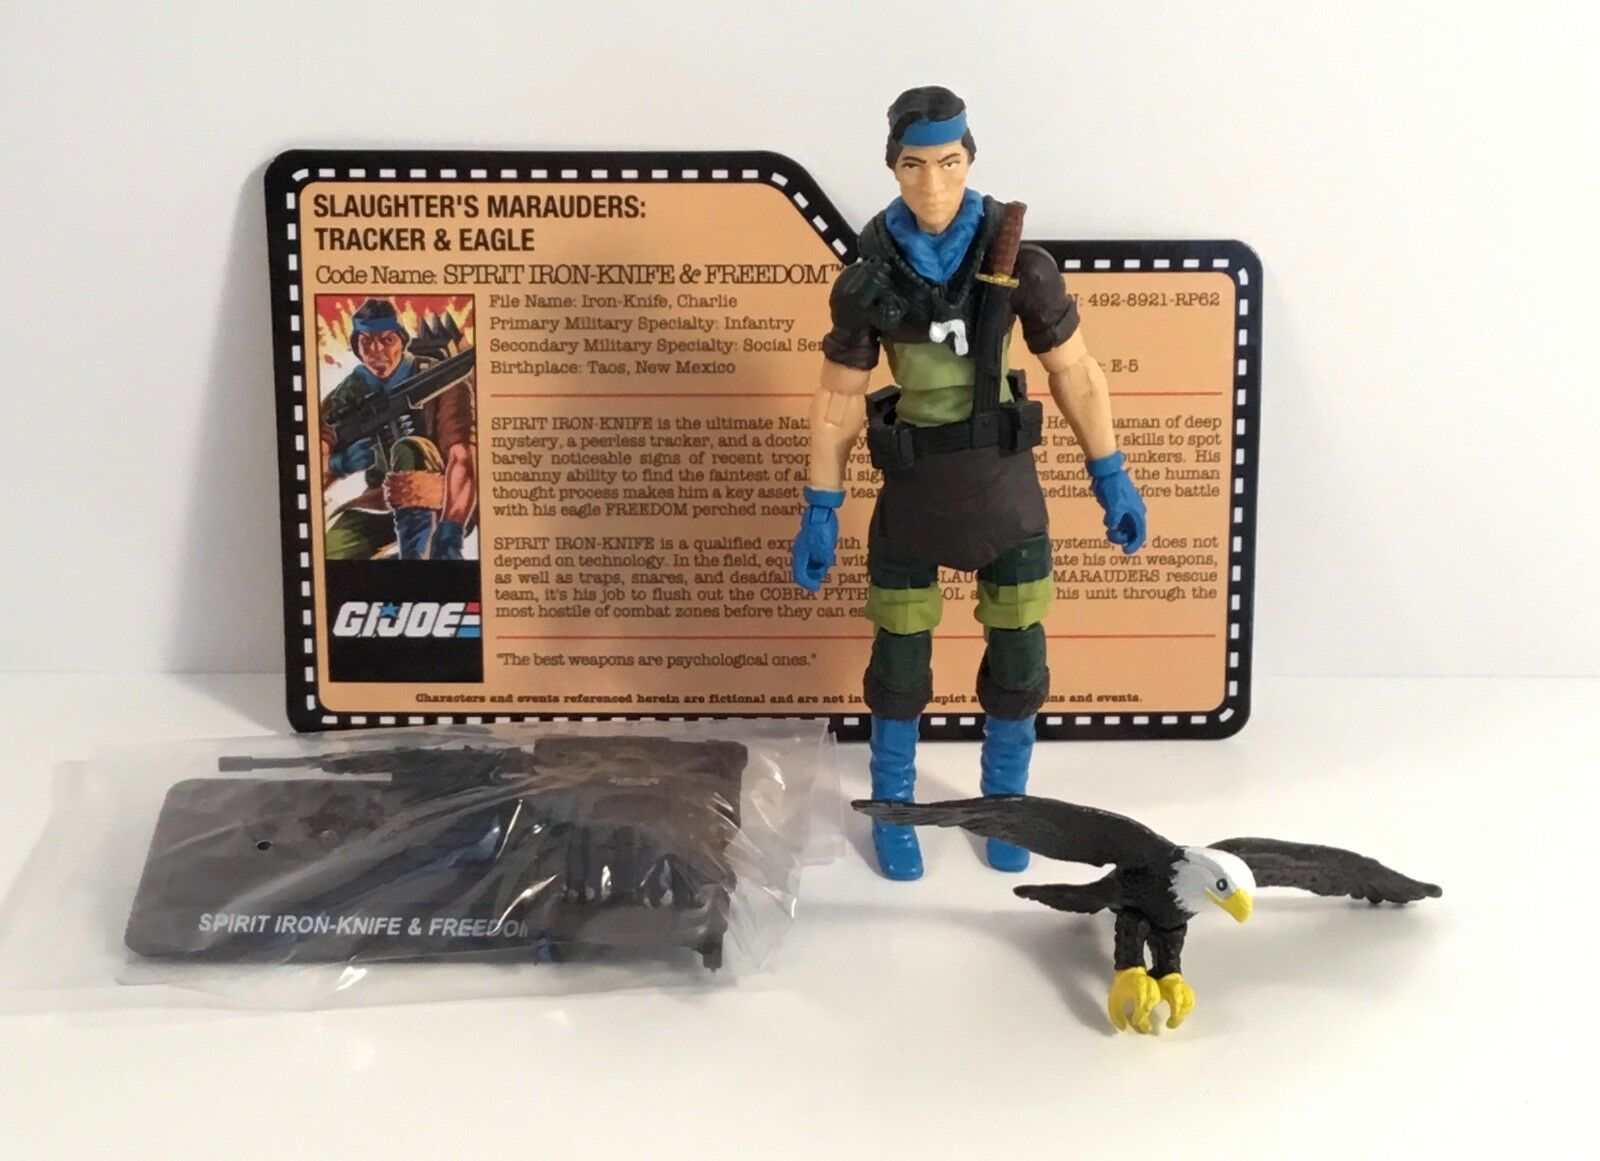 GI Joe Spirit & Freedom loose figure 2018 2018 2018 Joecon Club Slaughter's Marauders b65901